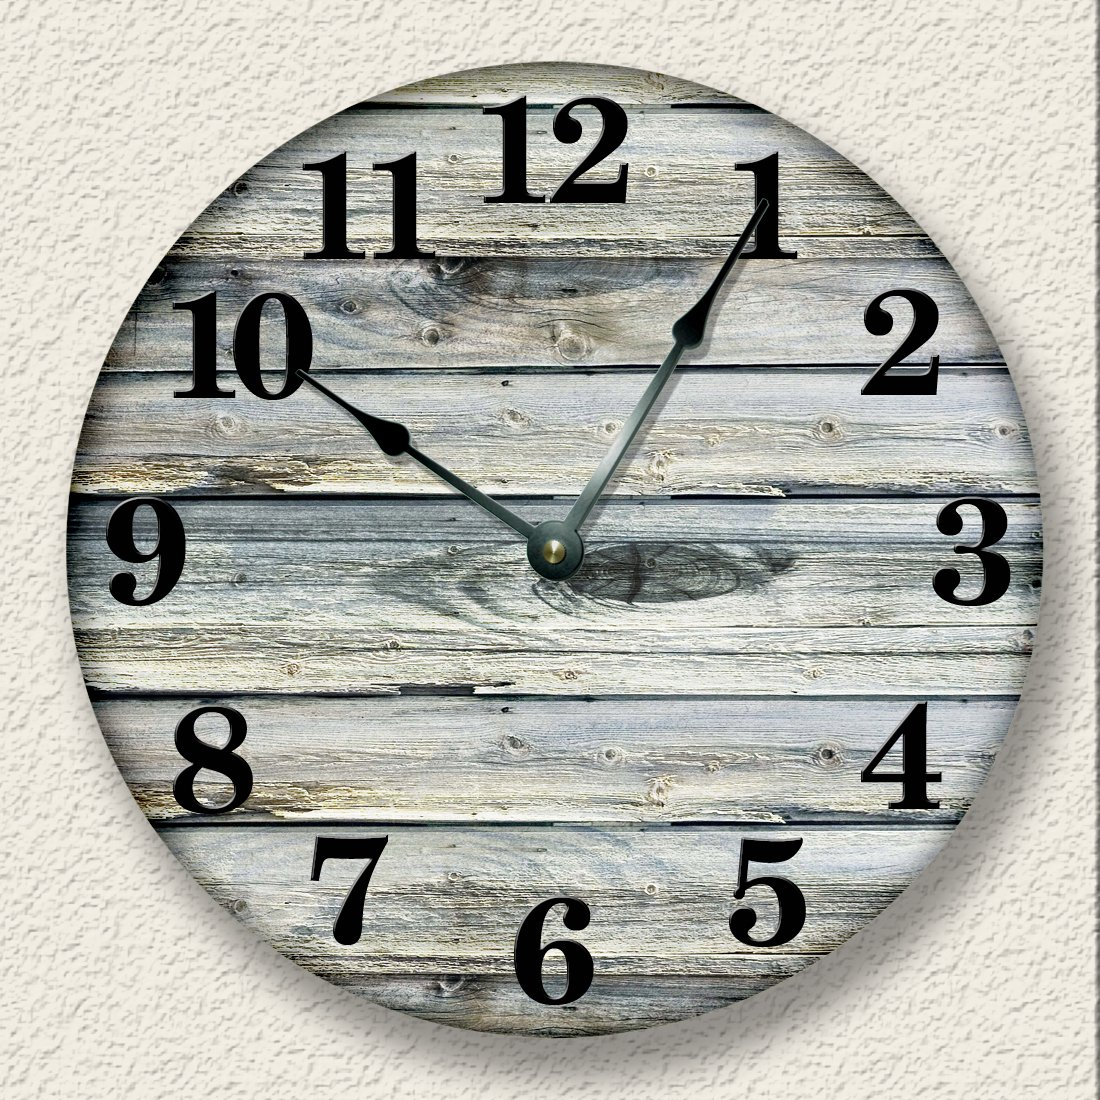 Amazon rustic wall clock weathered boards image beach sand amazon rustic wall clock weathered boards image beach sand tan cabin country decor home kitchen amipublicfo Image collections